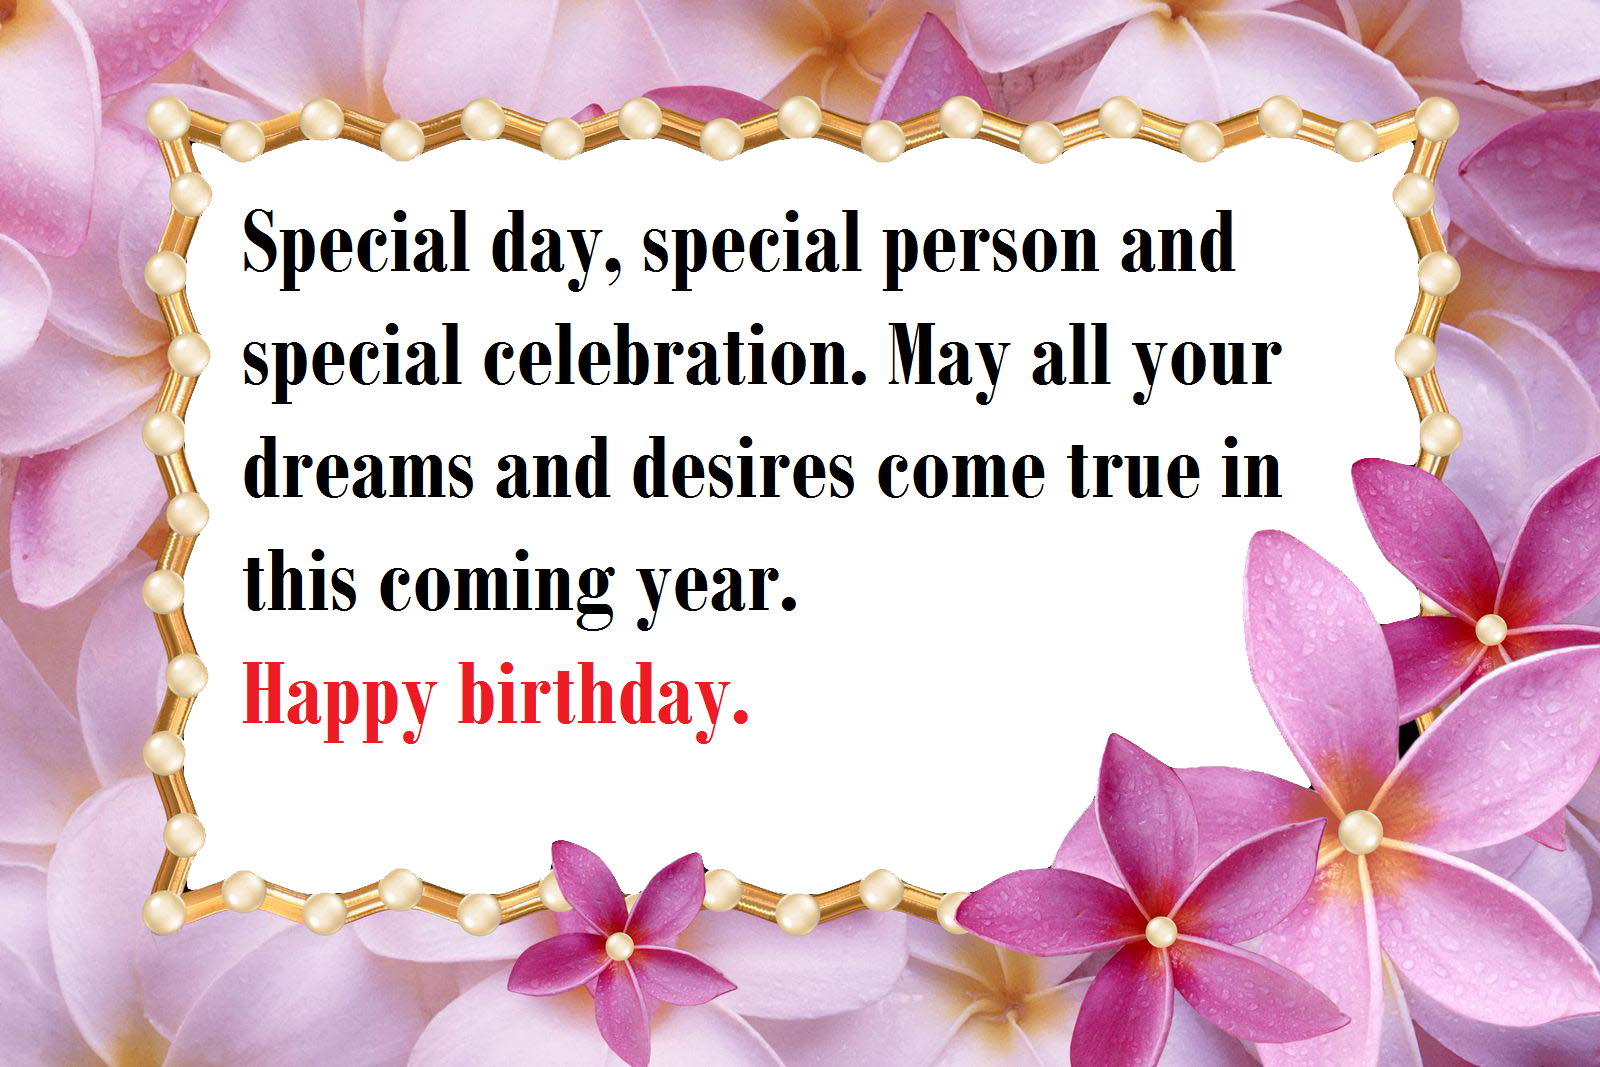 cute birthday wishes images and hd wallpapers2018  9to5